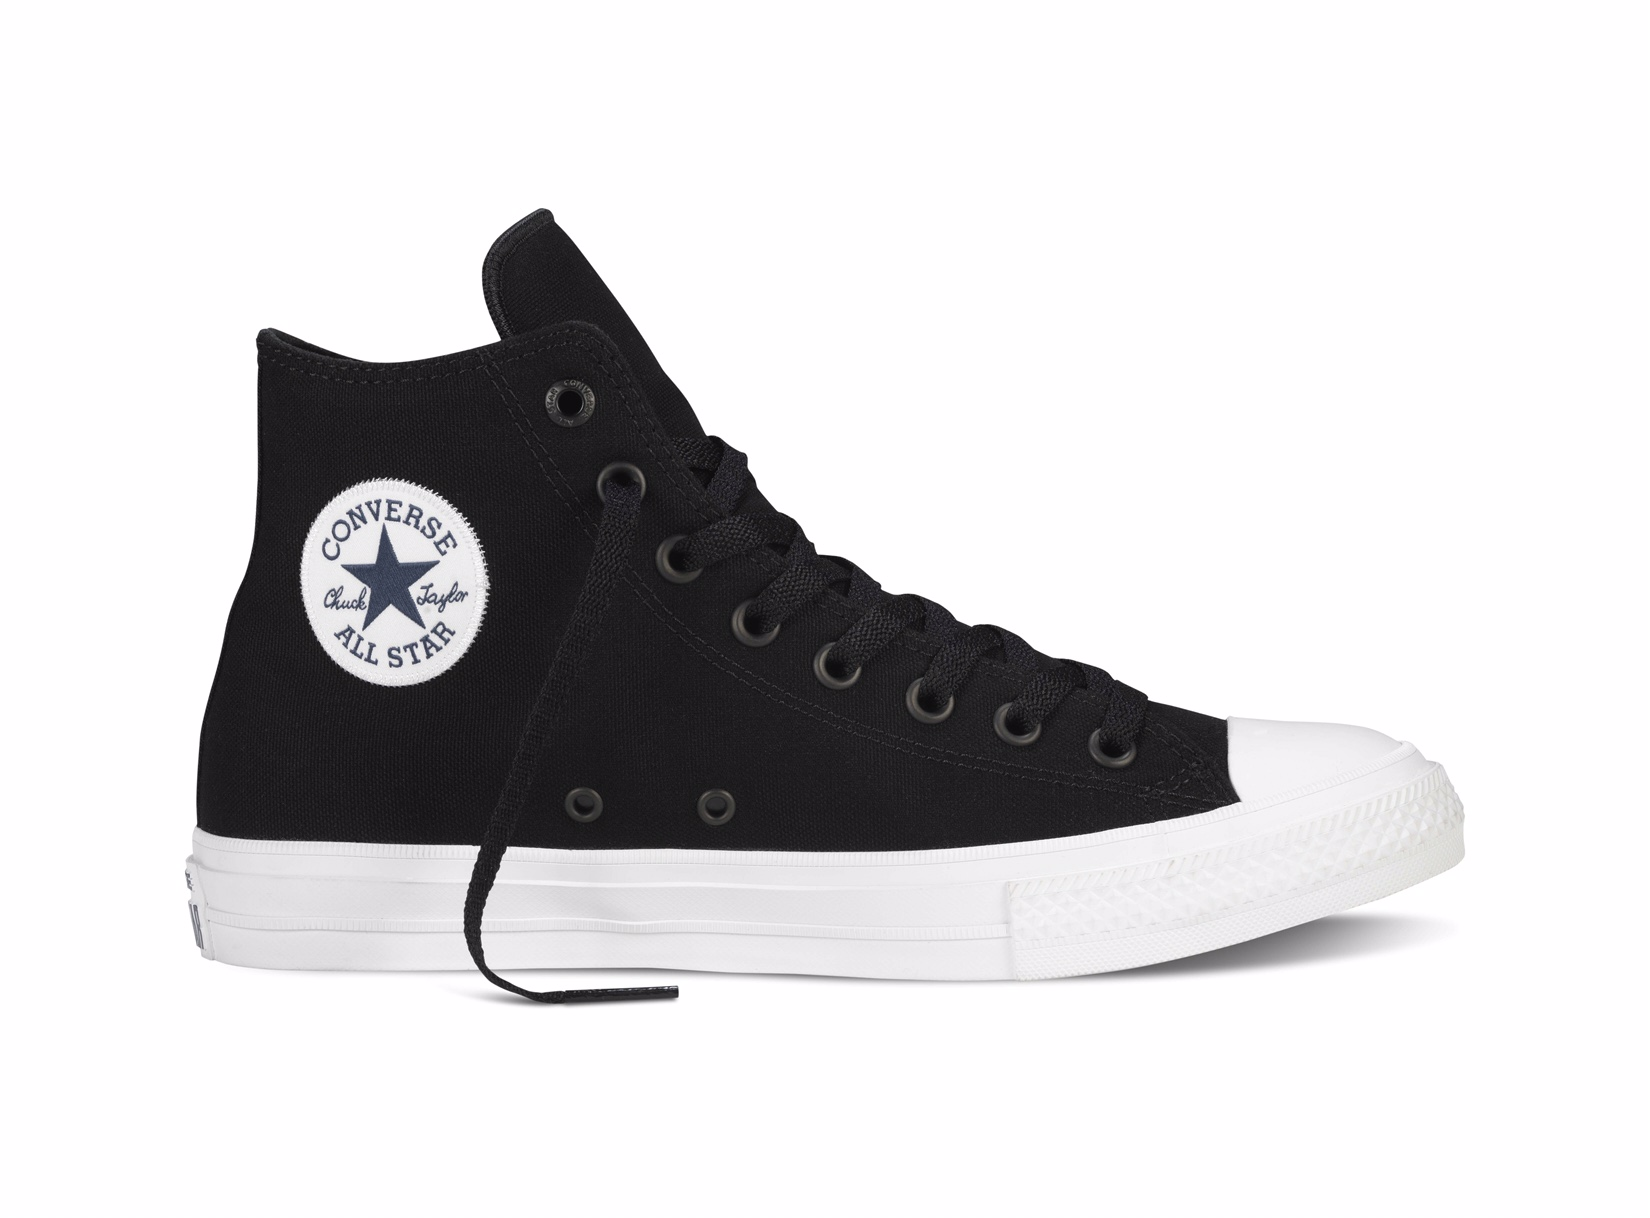 d440999a138 NEW SNEAKER RELEASE   Converse Announces Chuck Taylor All Star II ...